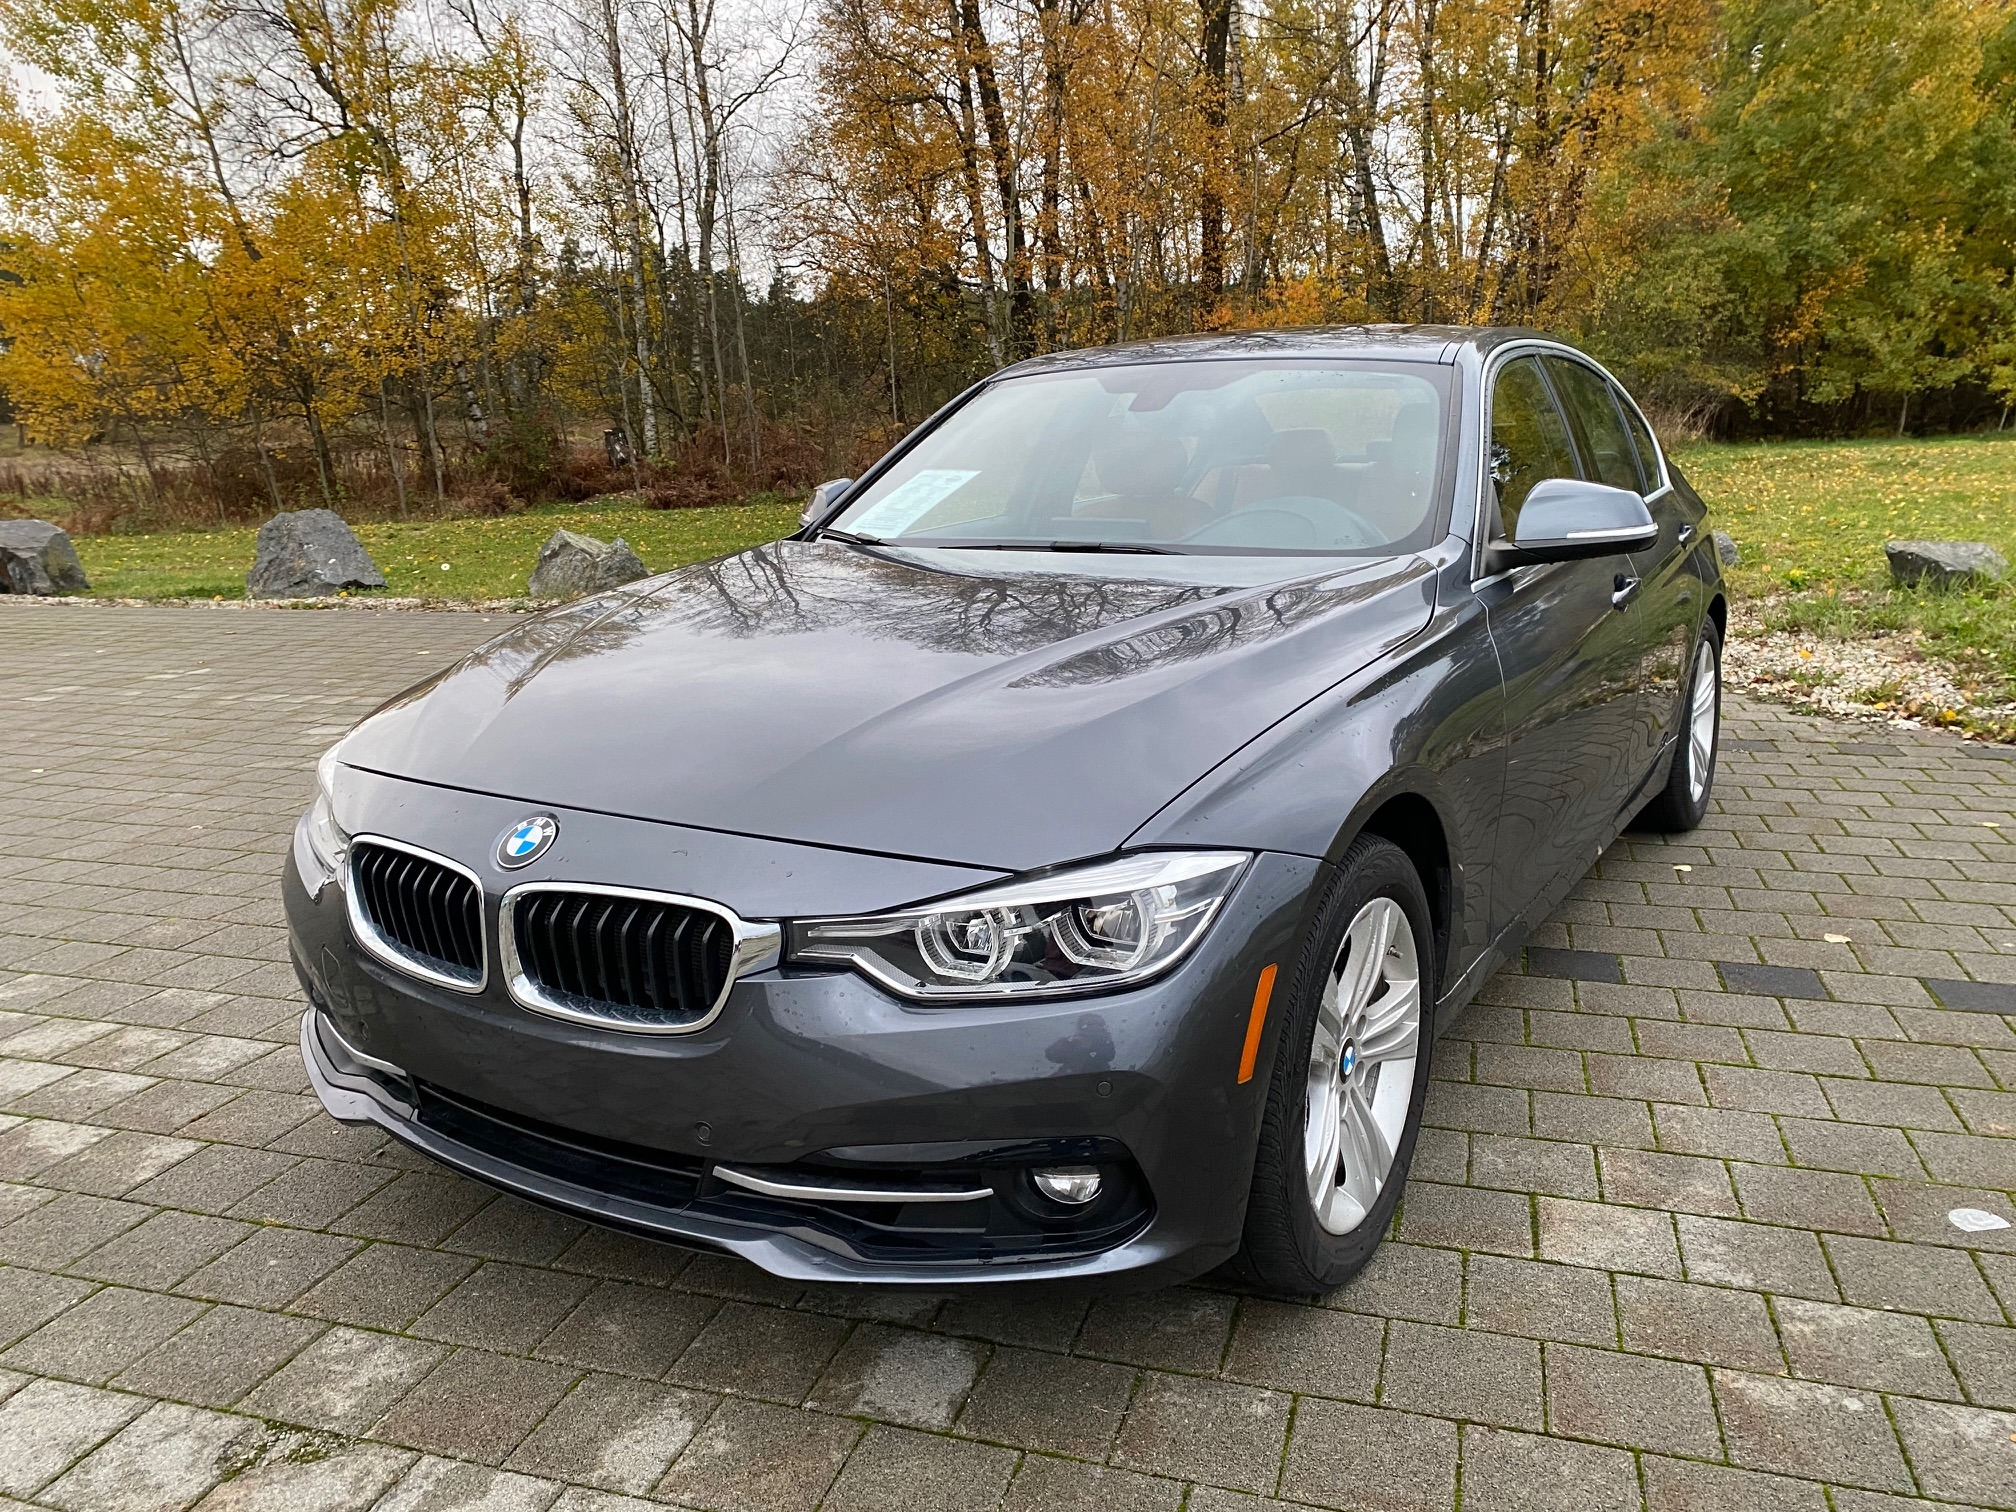 *New Arrival* </br>2017 BMW 330i XDrive Sport </br>as low as </br>$219 per paycheck